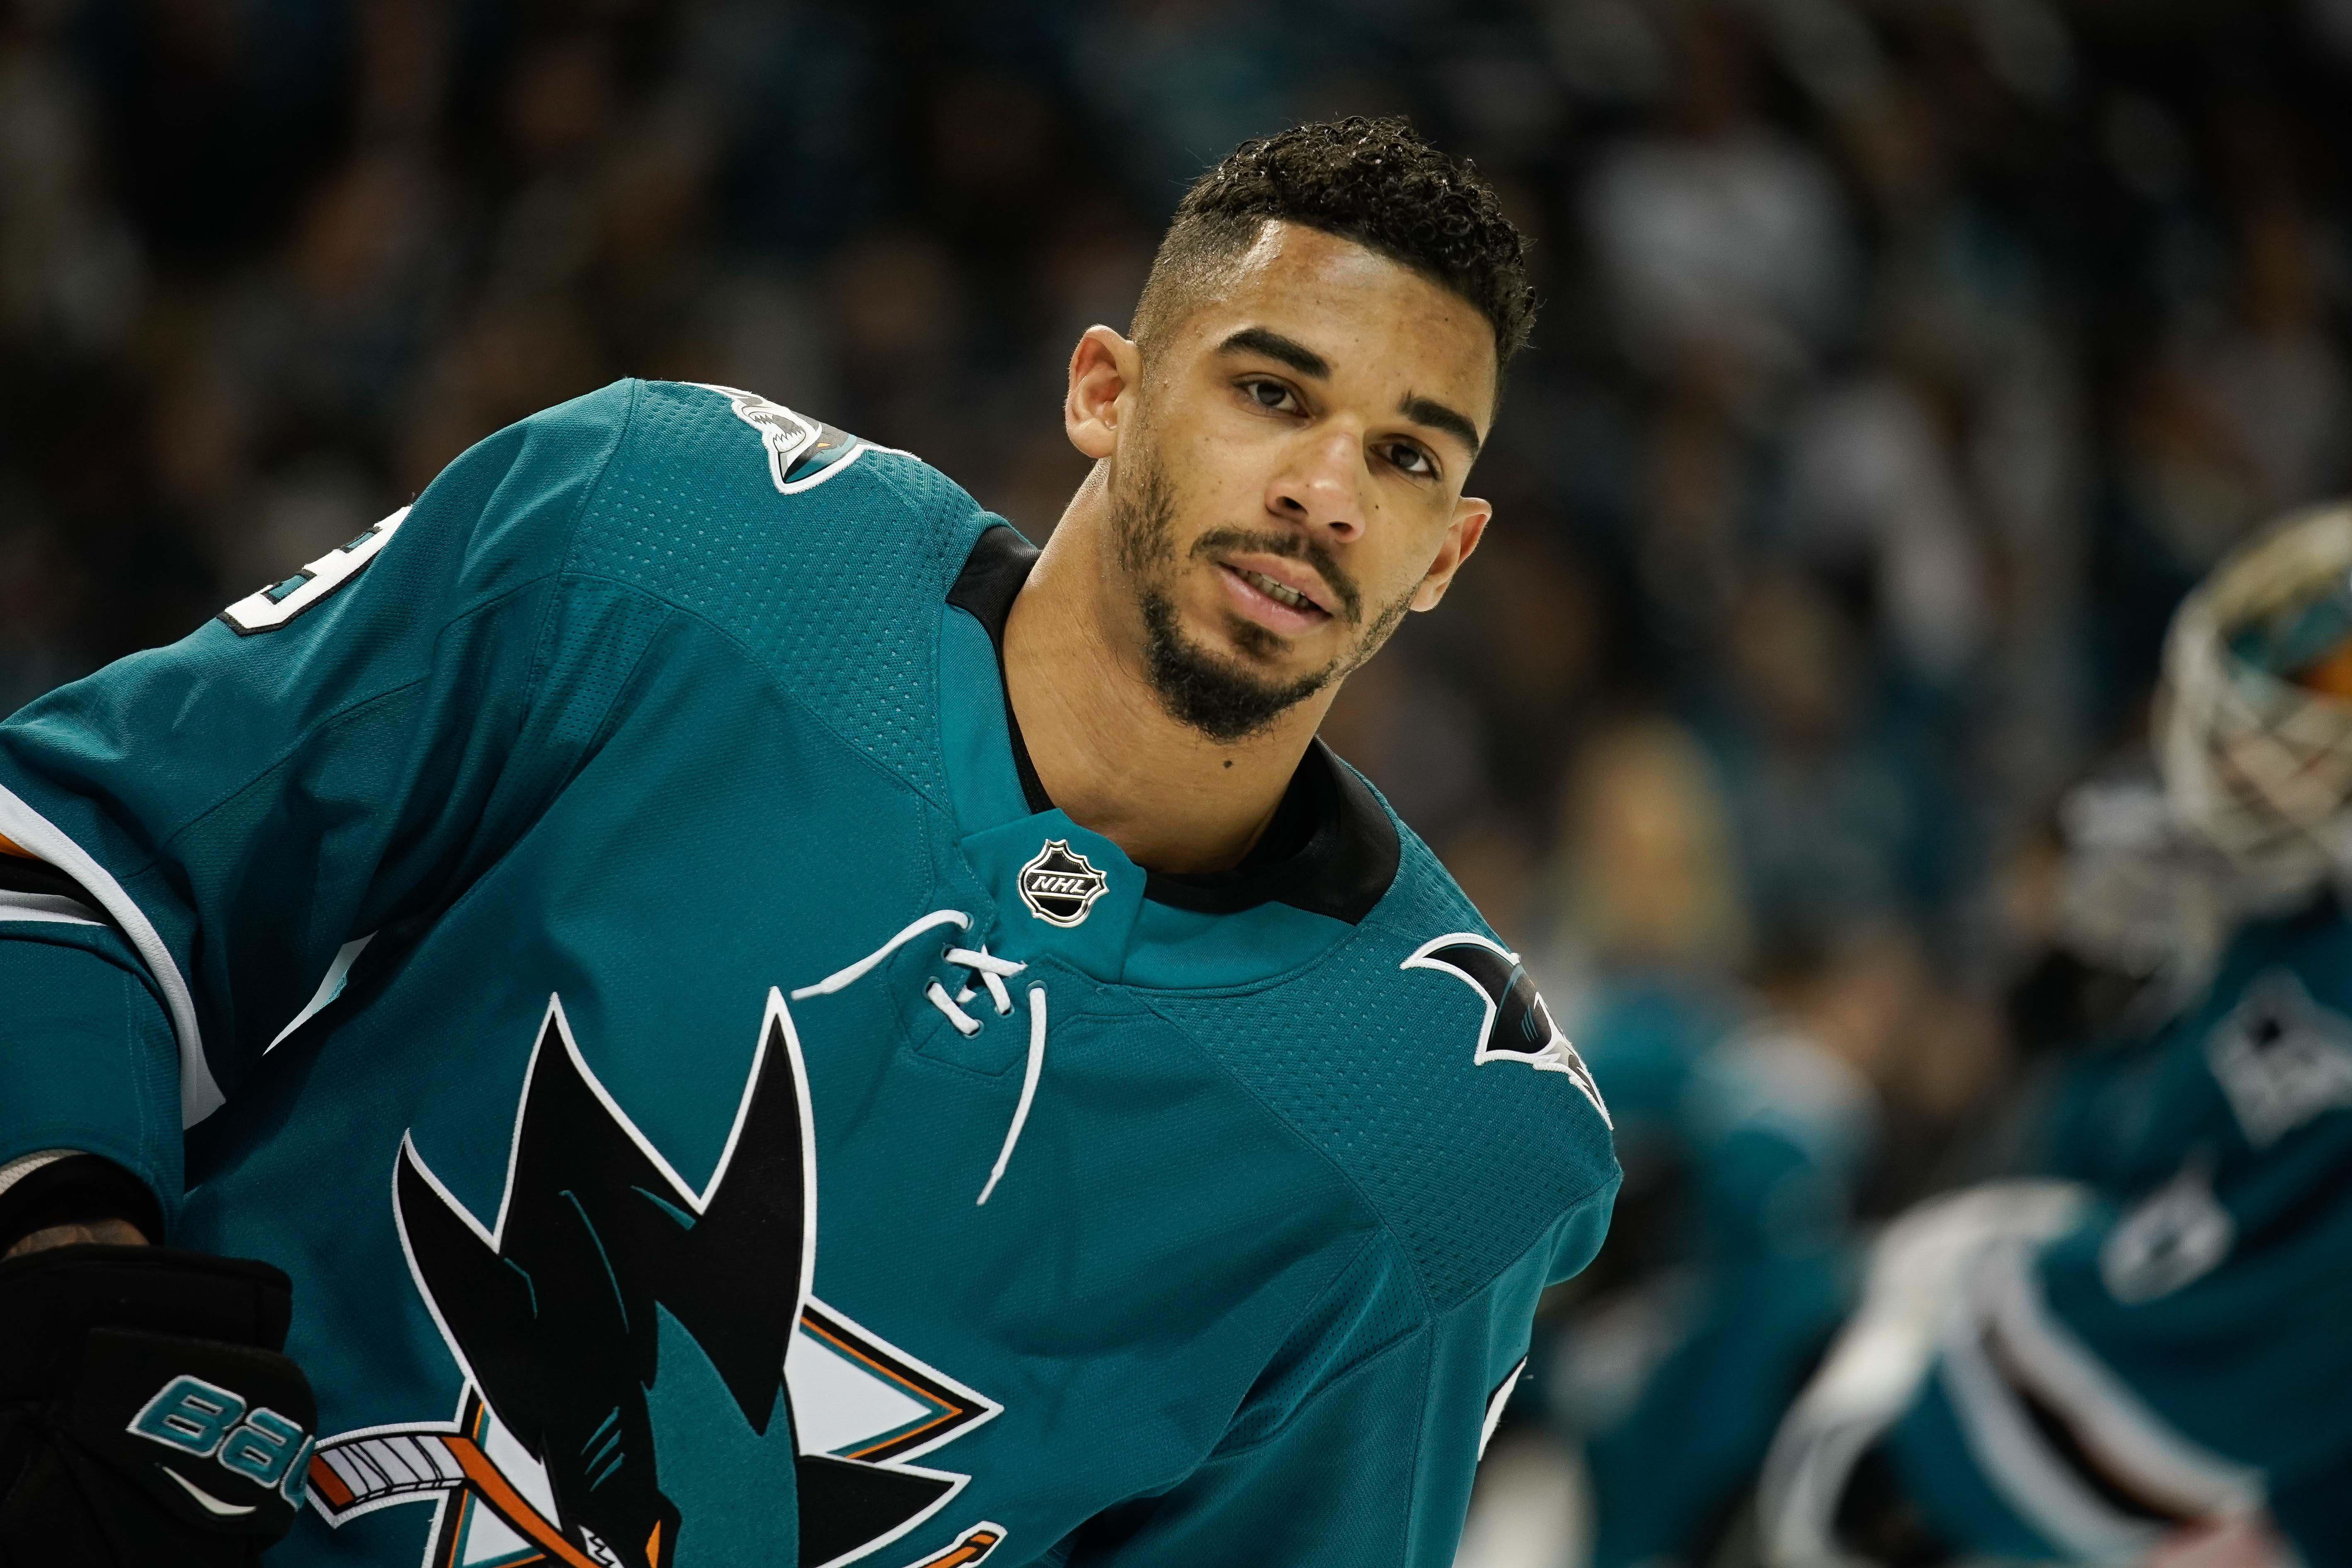 May 6, 2018; San Jose, CA, USA; San Jose Sharks left wing Evander Kane (9) warms up before the game against the Vegas Golden Knights in game six of the second round of the 2018 Stanley Cup Playoffs at SAP Center at San Jose.